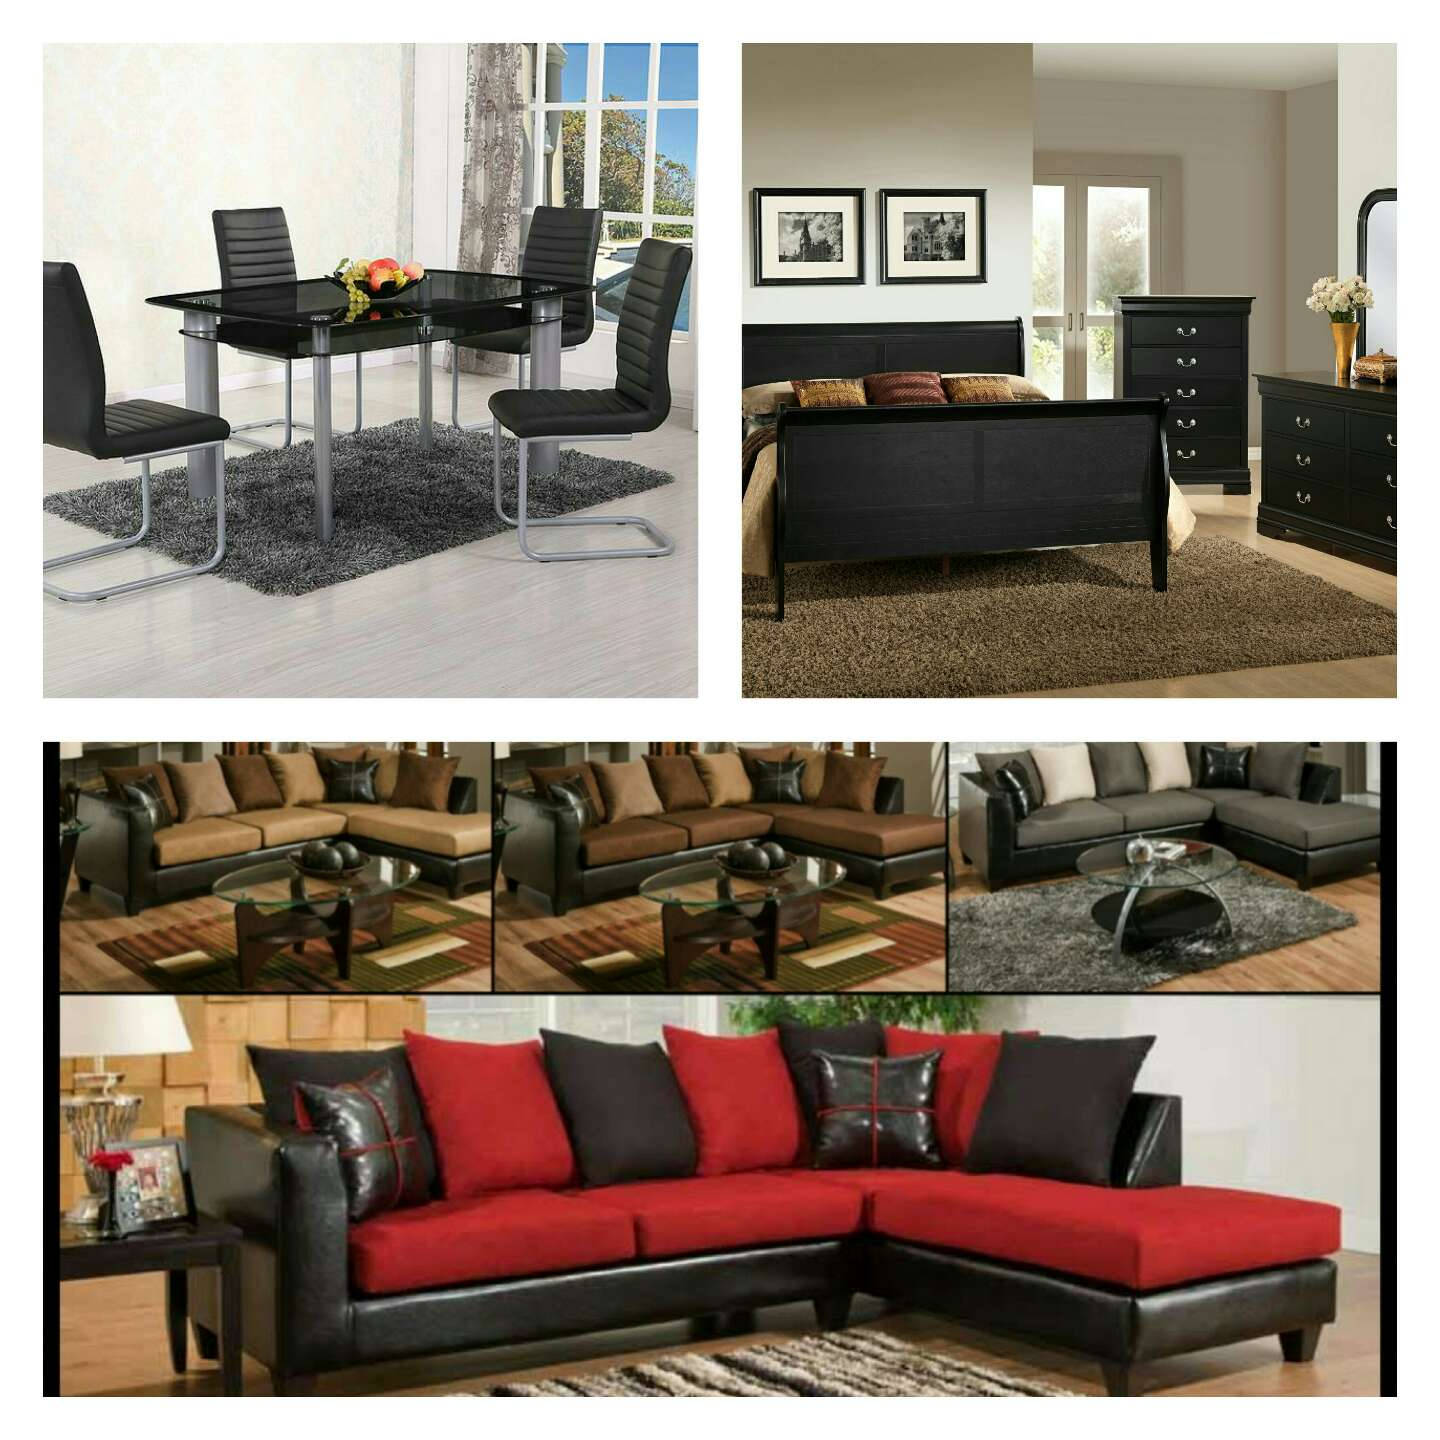 Furniture Package Deals 3 Room Furniture Package Deal For Sale 5miles Buy And Sell